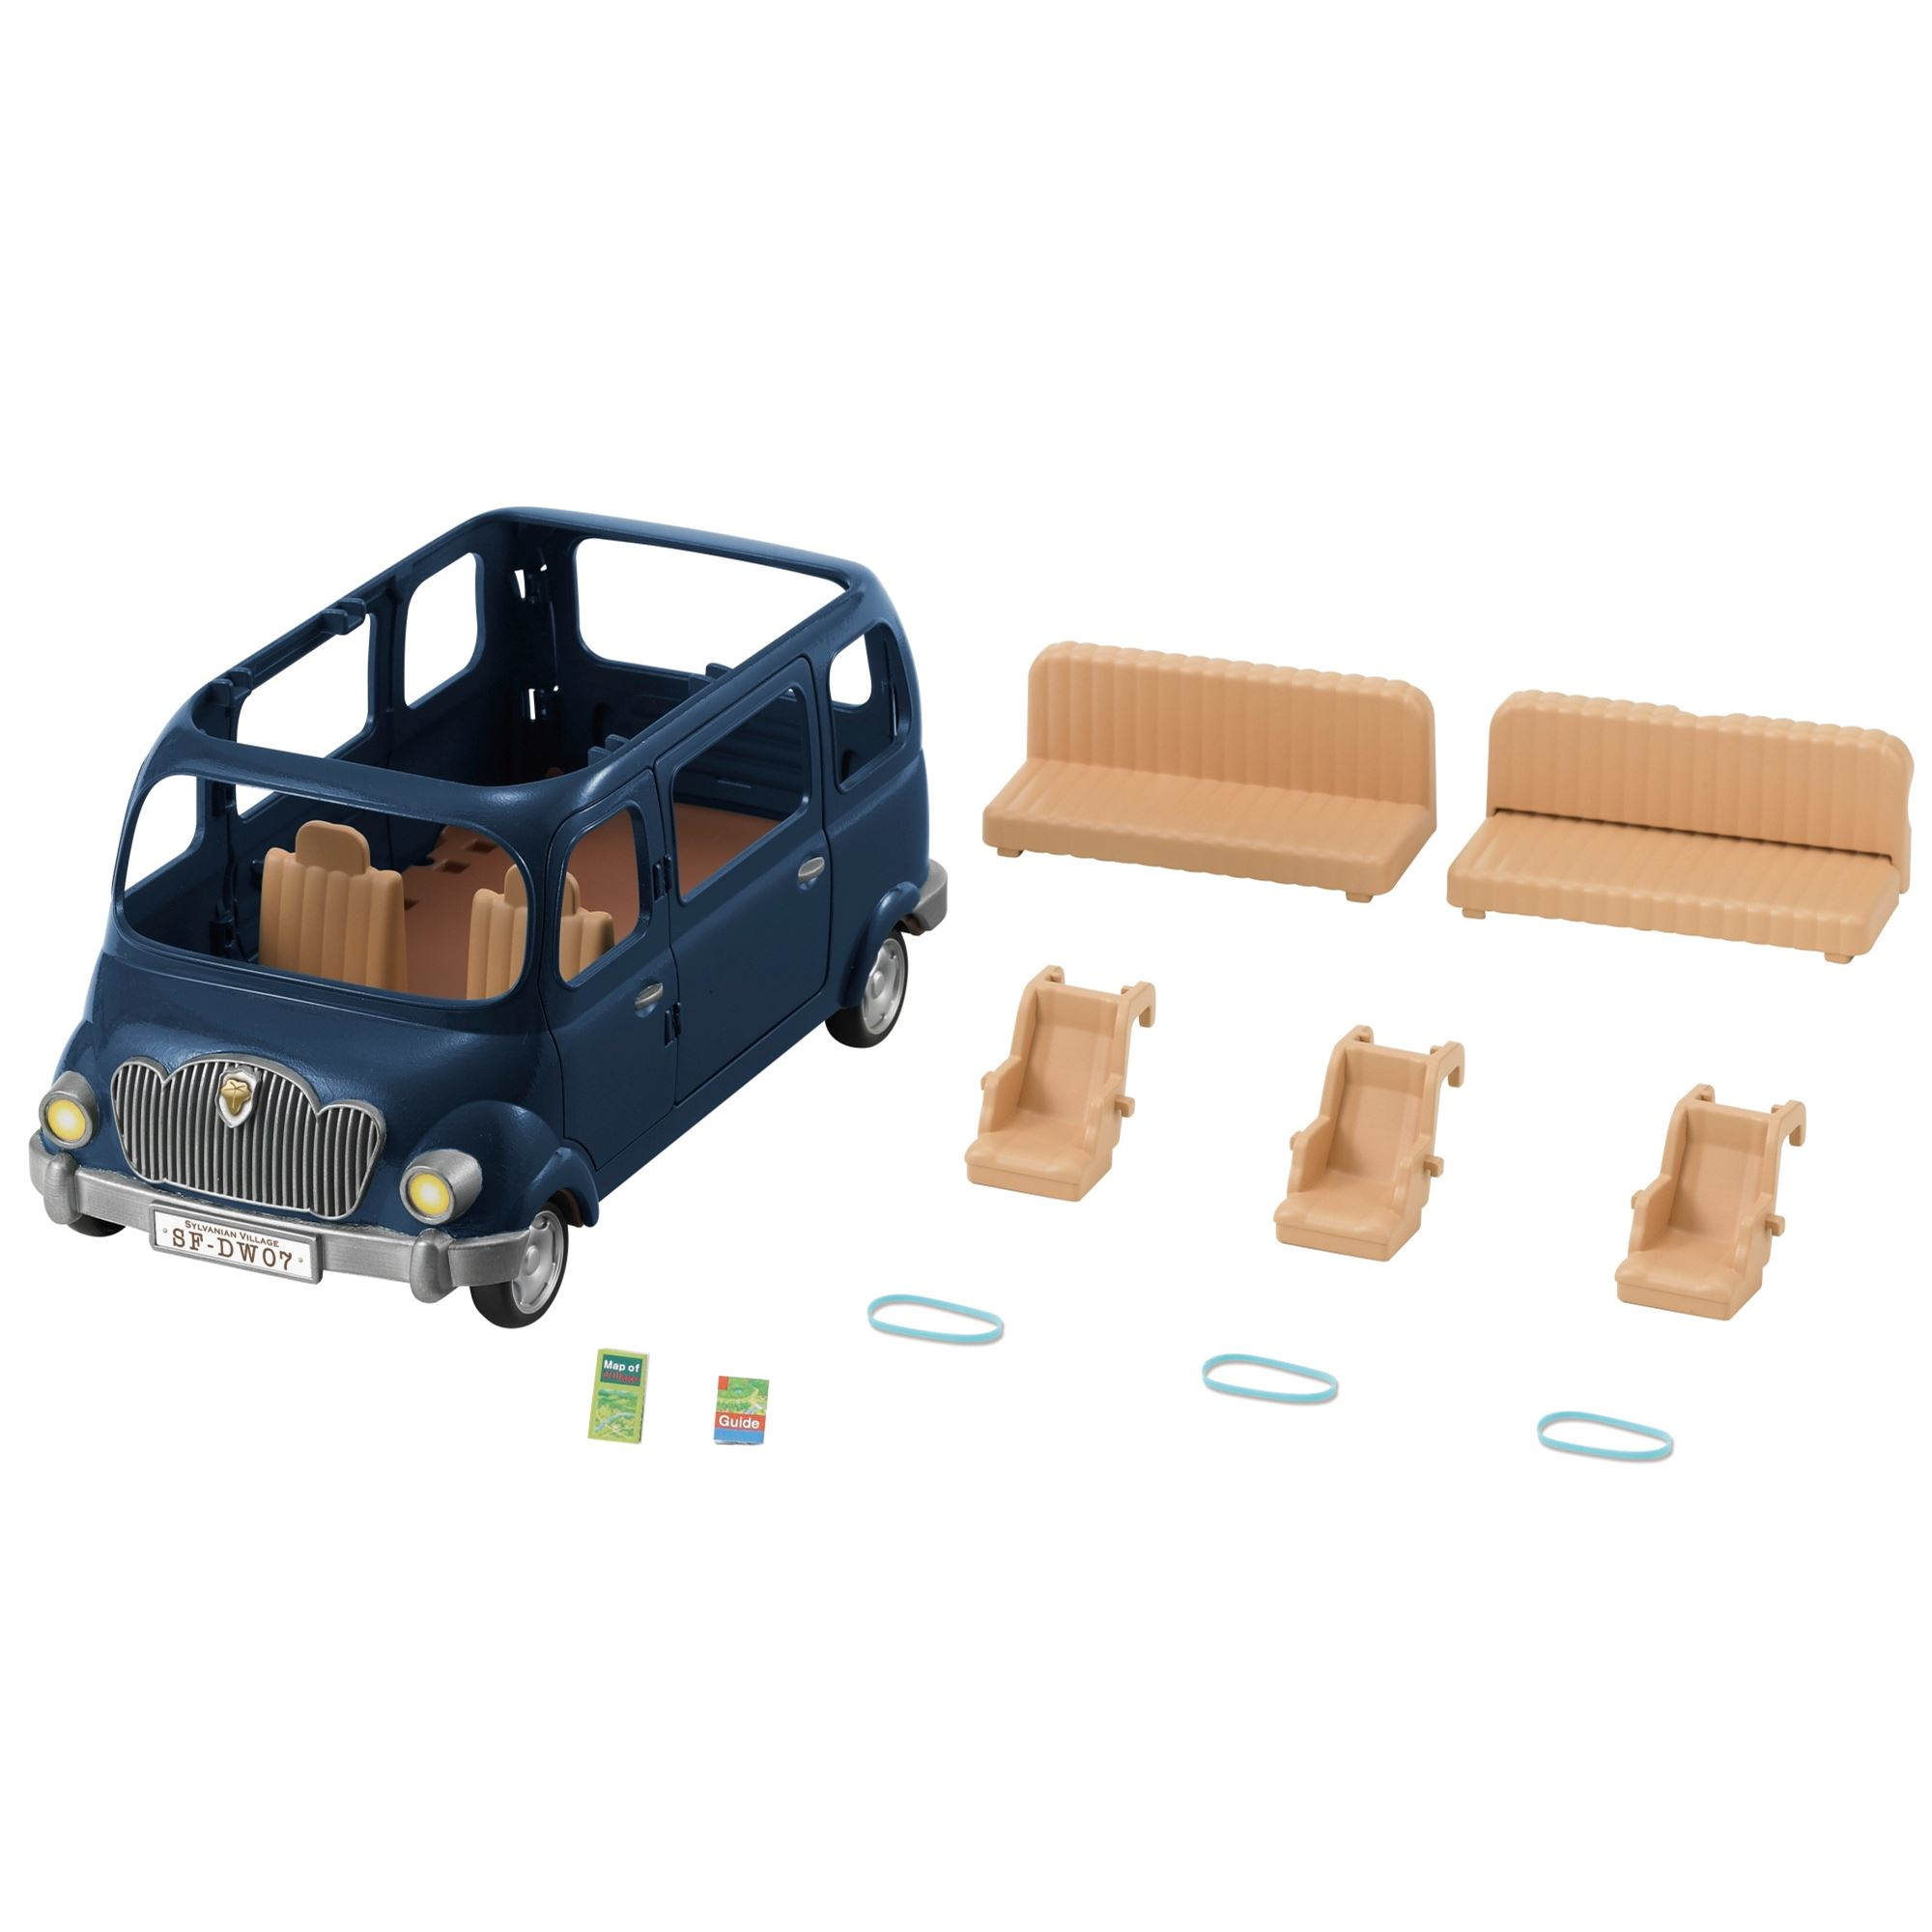 Sylvanian Families Bluebell 7 Seater